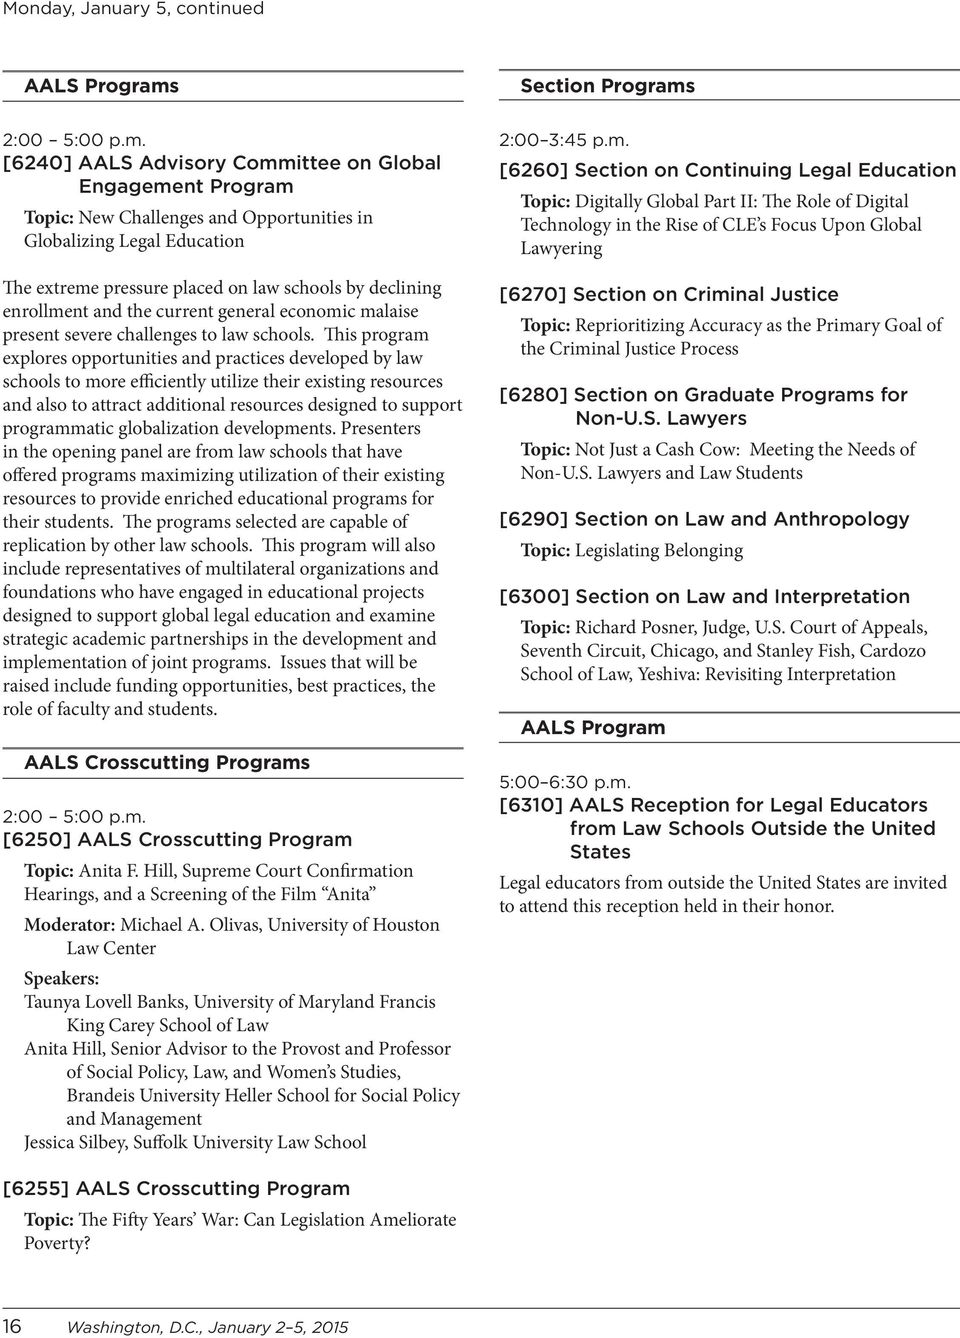 [6240] AALS Advisory Committee on Global Engagement Program Topic: New Challenges and Opportunities in Globalizing Legal Education The extreme pressure placed on law schools by declining enrollment